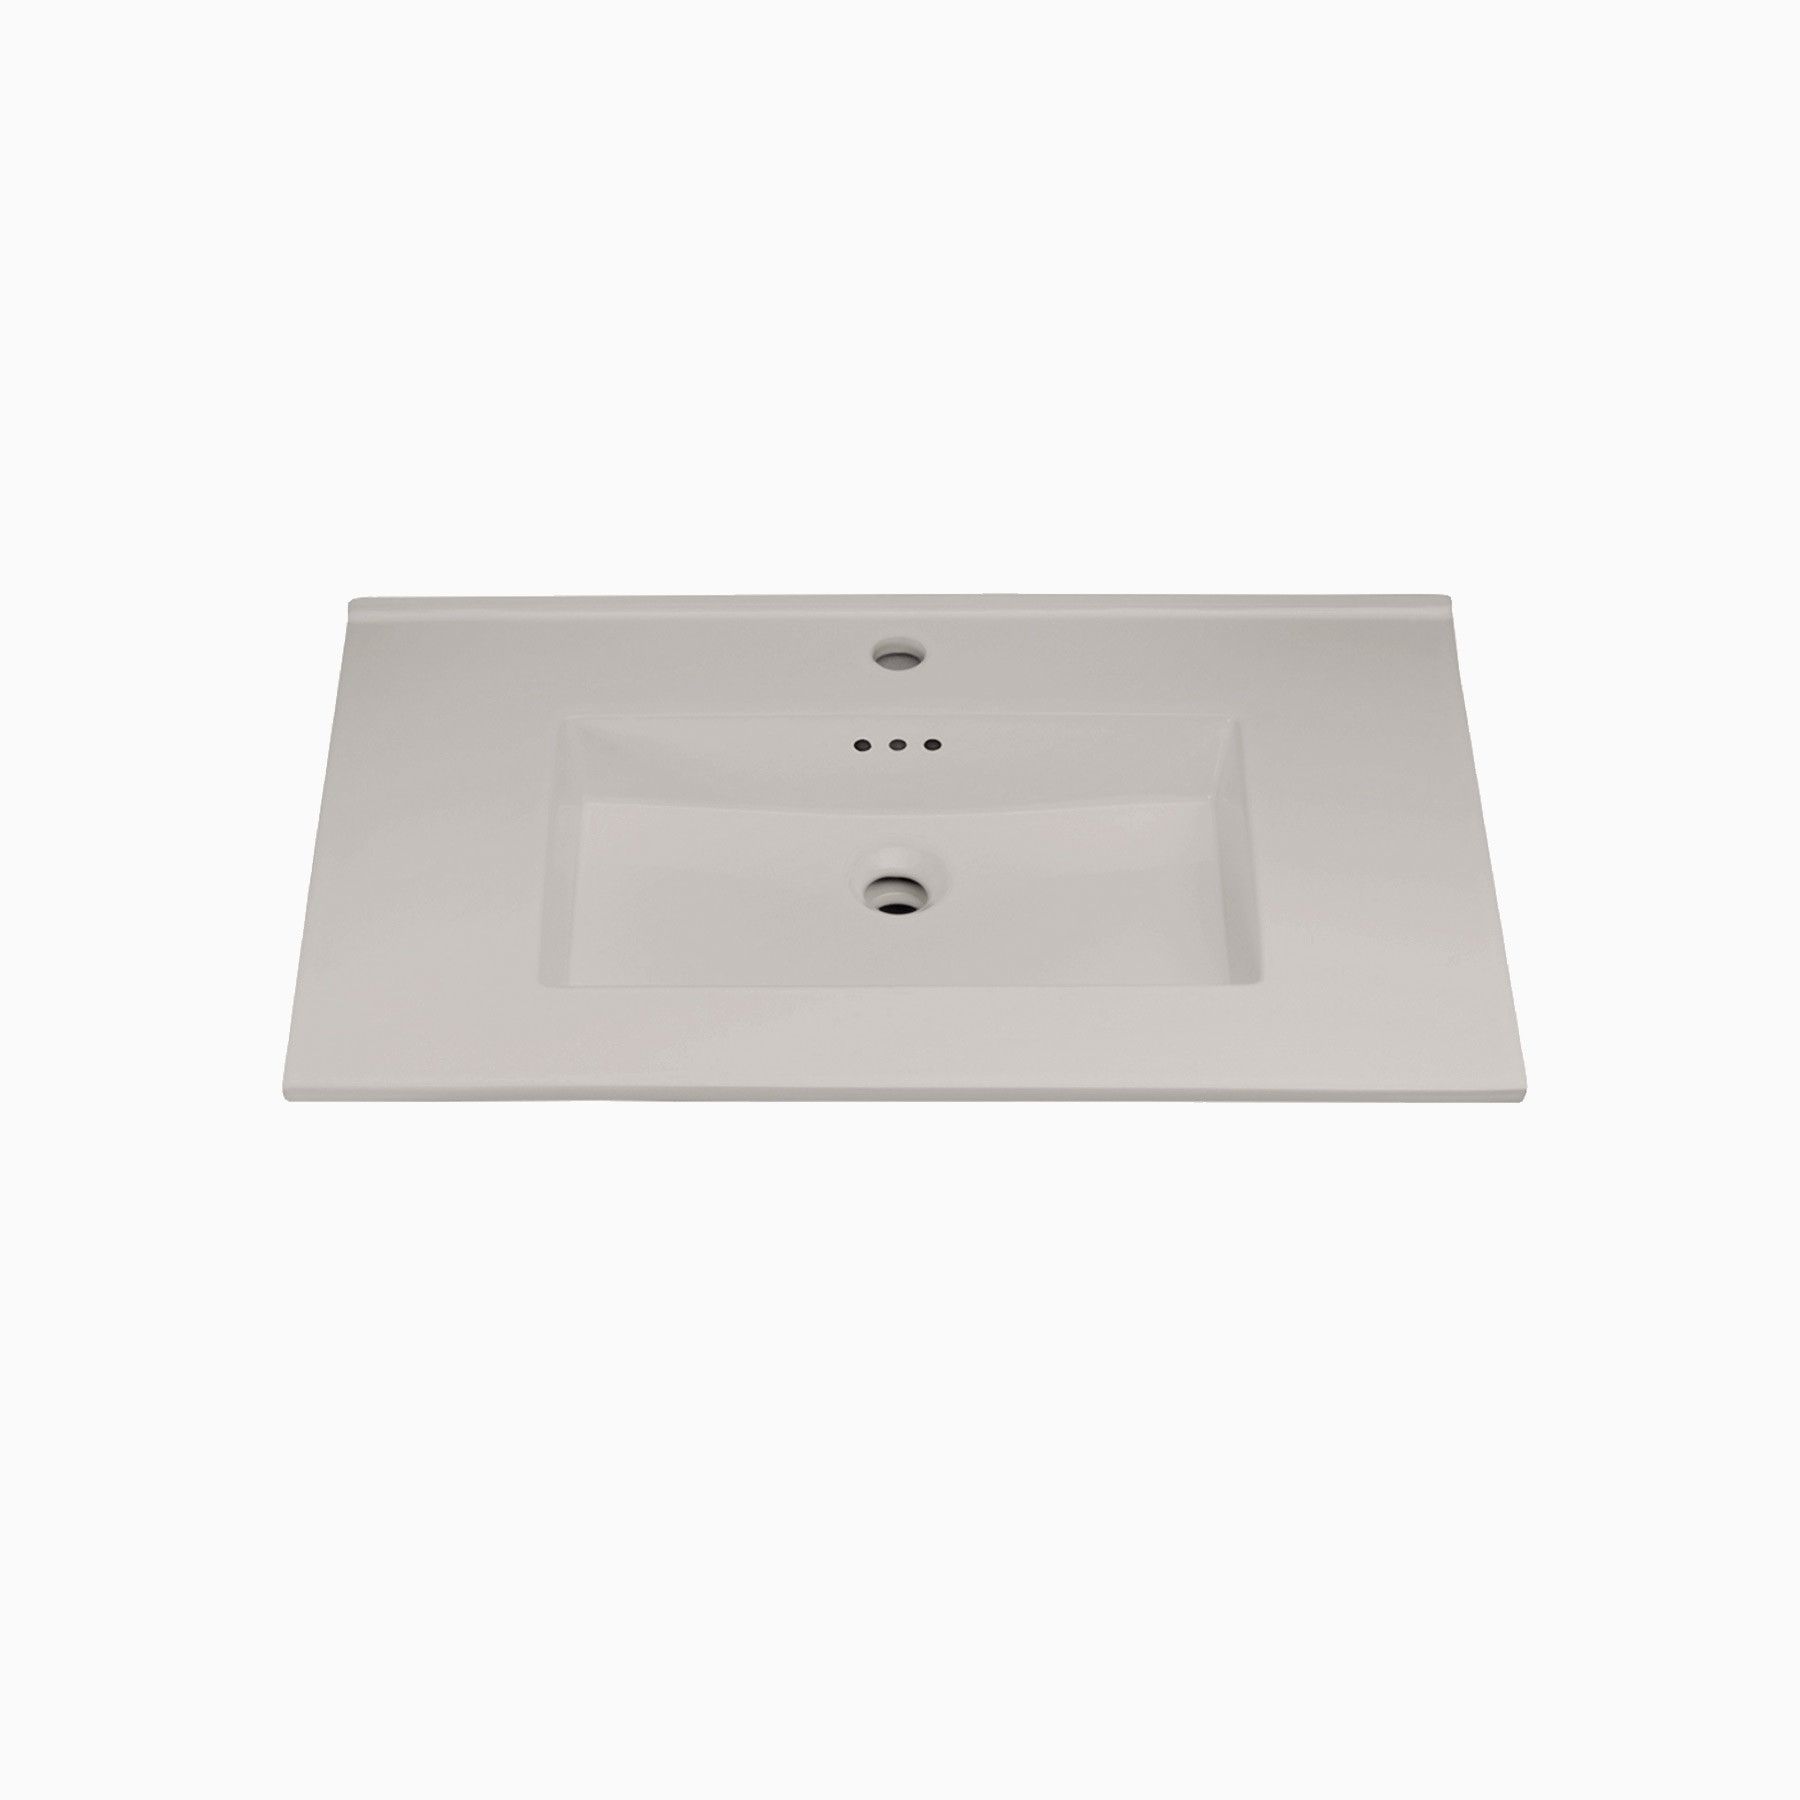 33 W X 20 D Marbella Ceramic Single Vanity Top With Integrated Sink And Faucet Hole Beach Gray